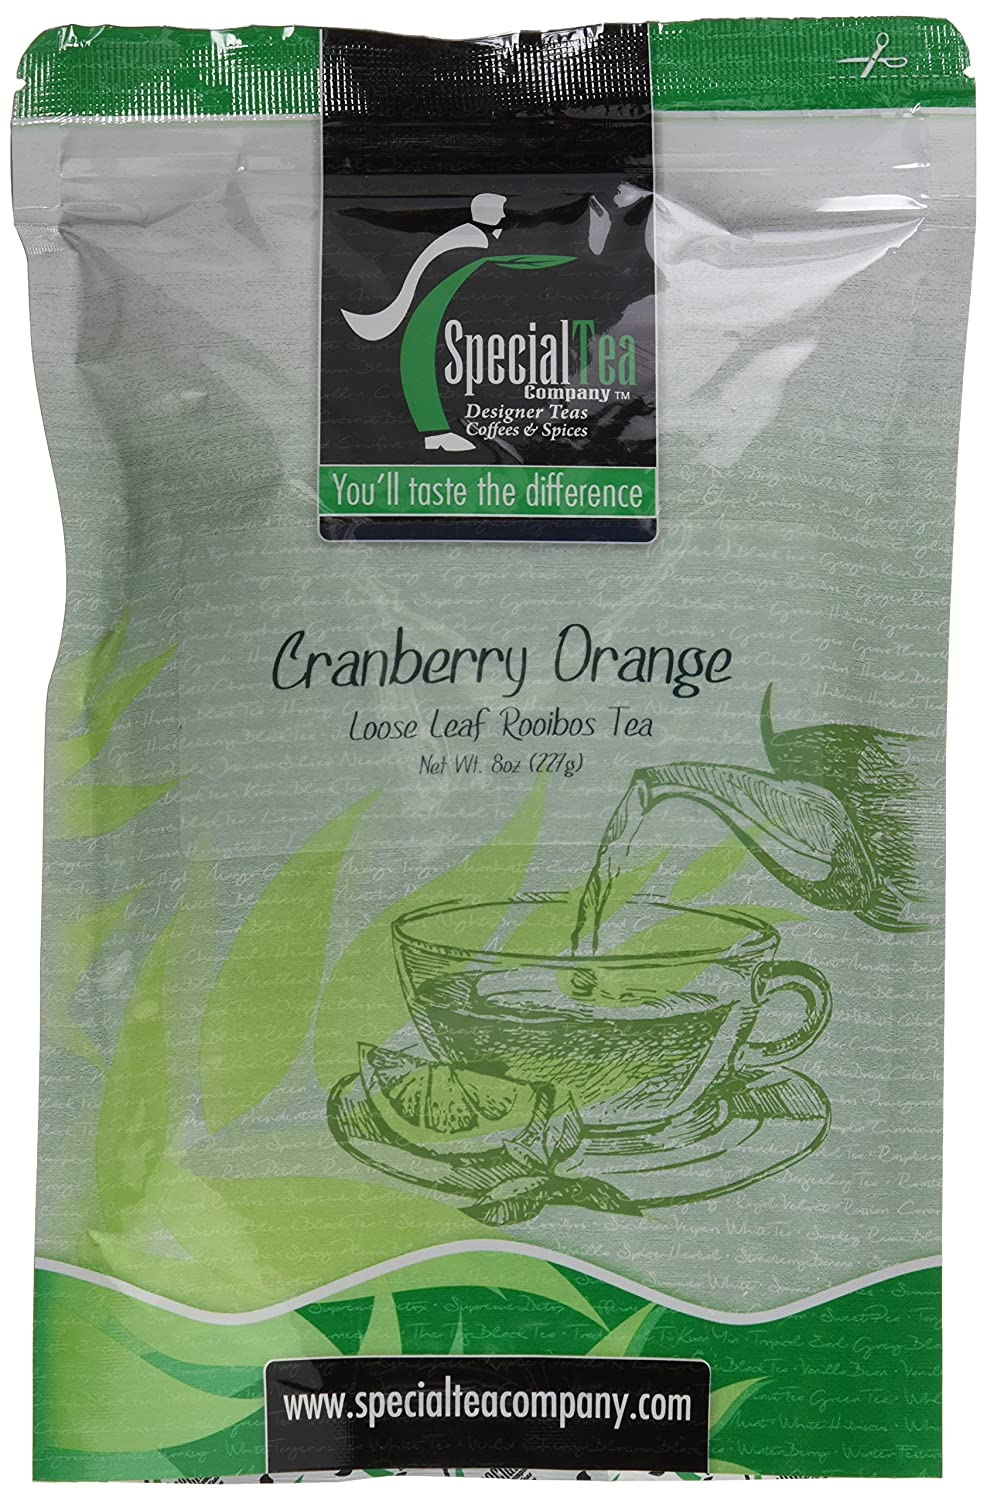 Special Tea Loose Leaf Cranberry lowest price Ranking integrated 1st place Orange Ounce Rooibos 8